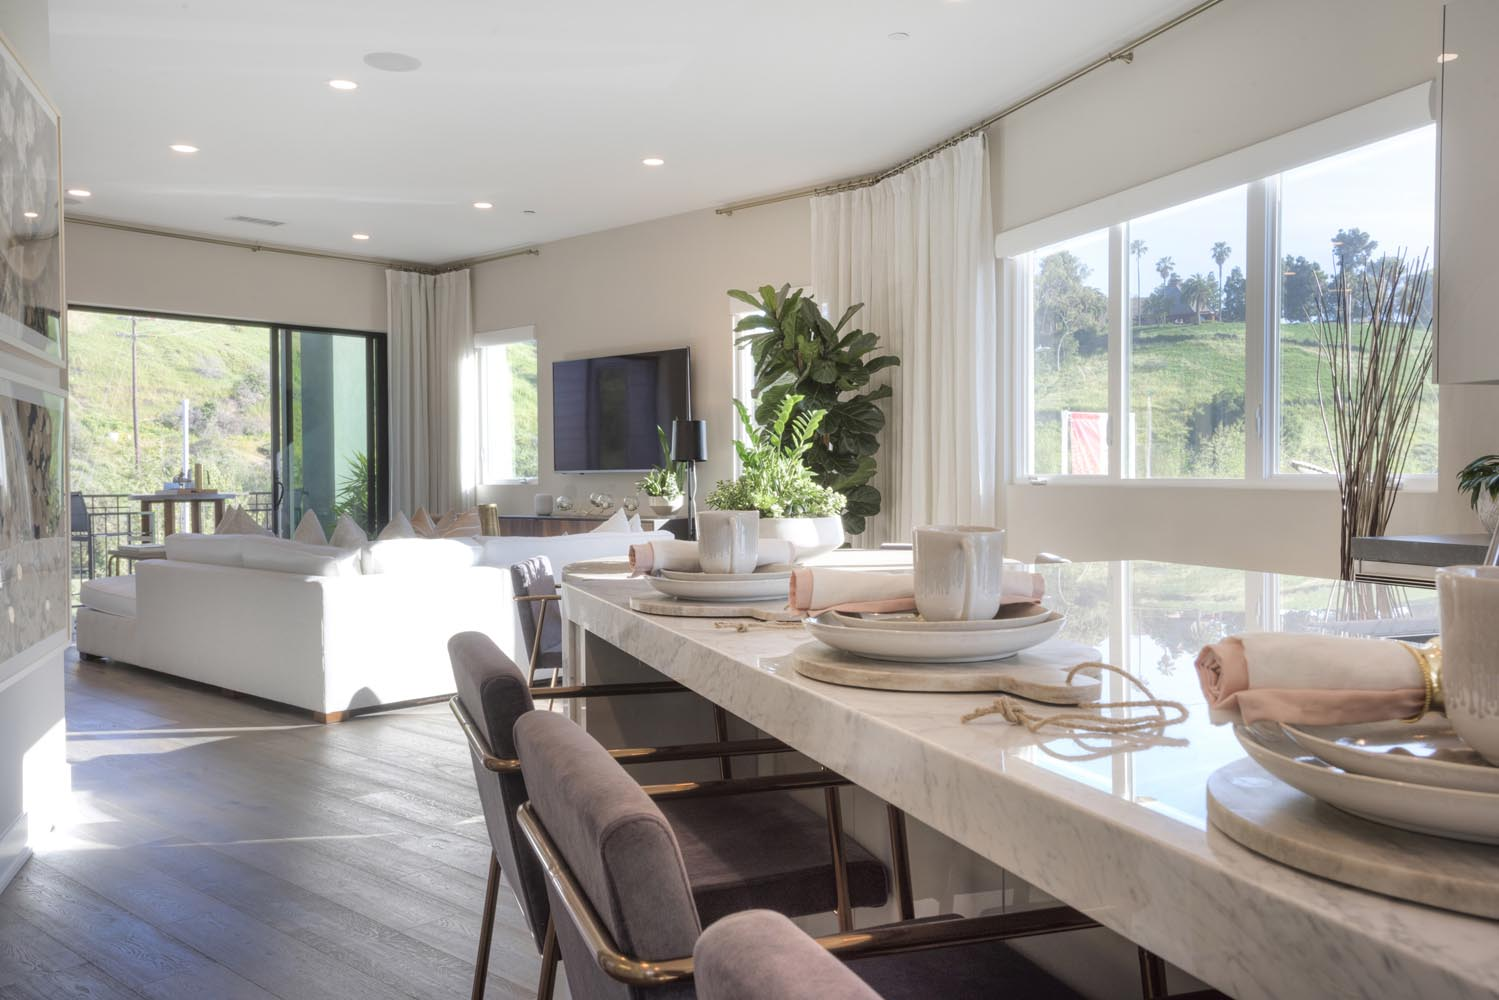 Residence 1 Dining Room | The Collection at Playa Vista in Los Angeles, CA | Brookfield Residential